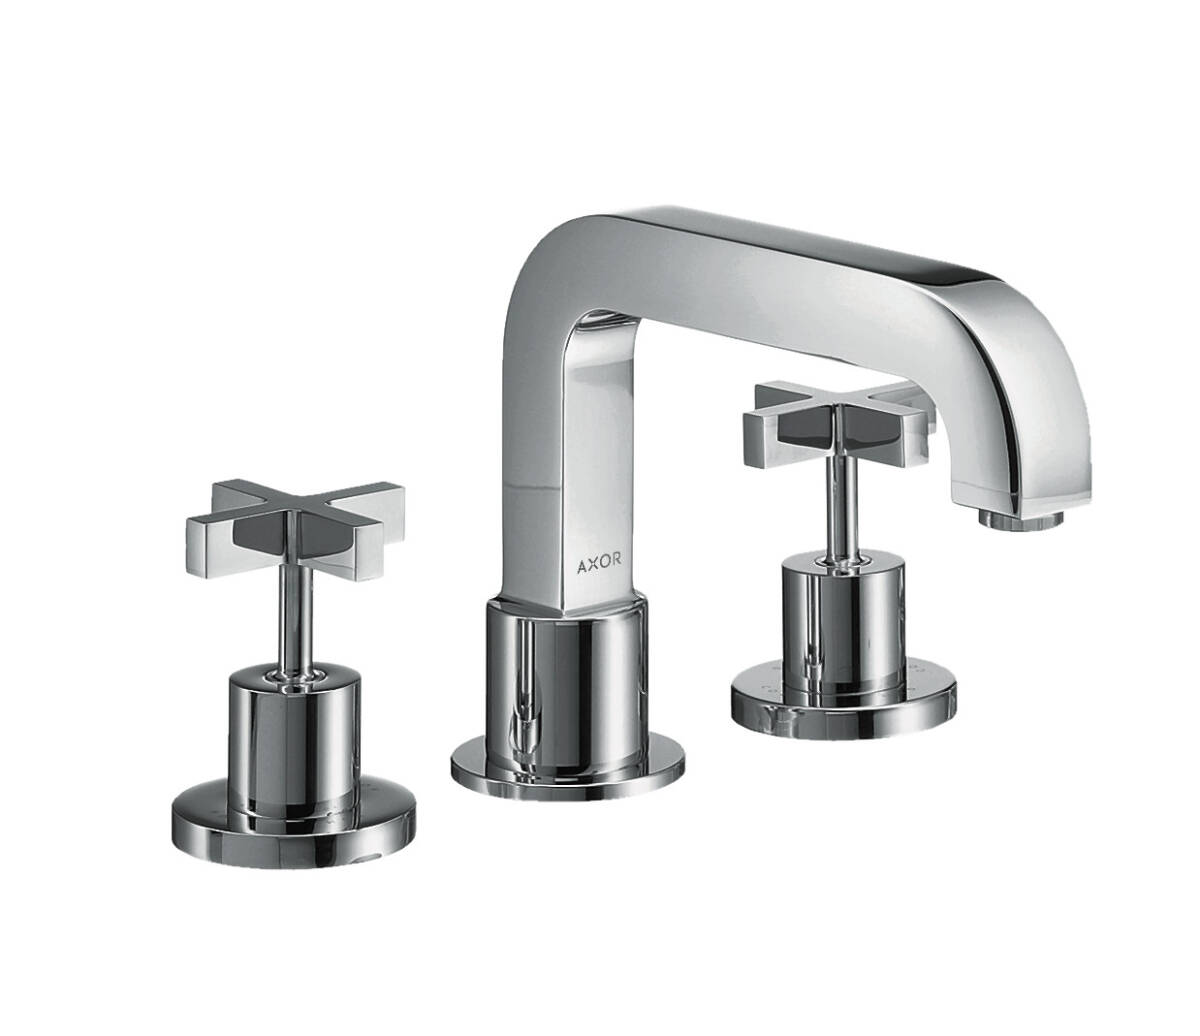 3-hole rim mounted bath mixer with cross handles, Chrome, 39436000